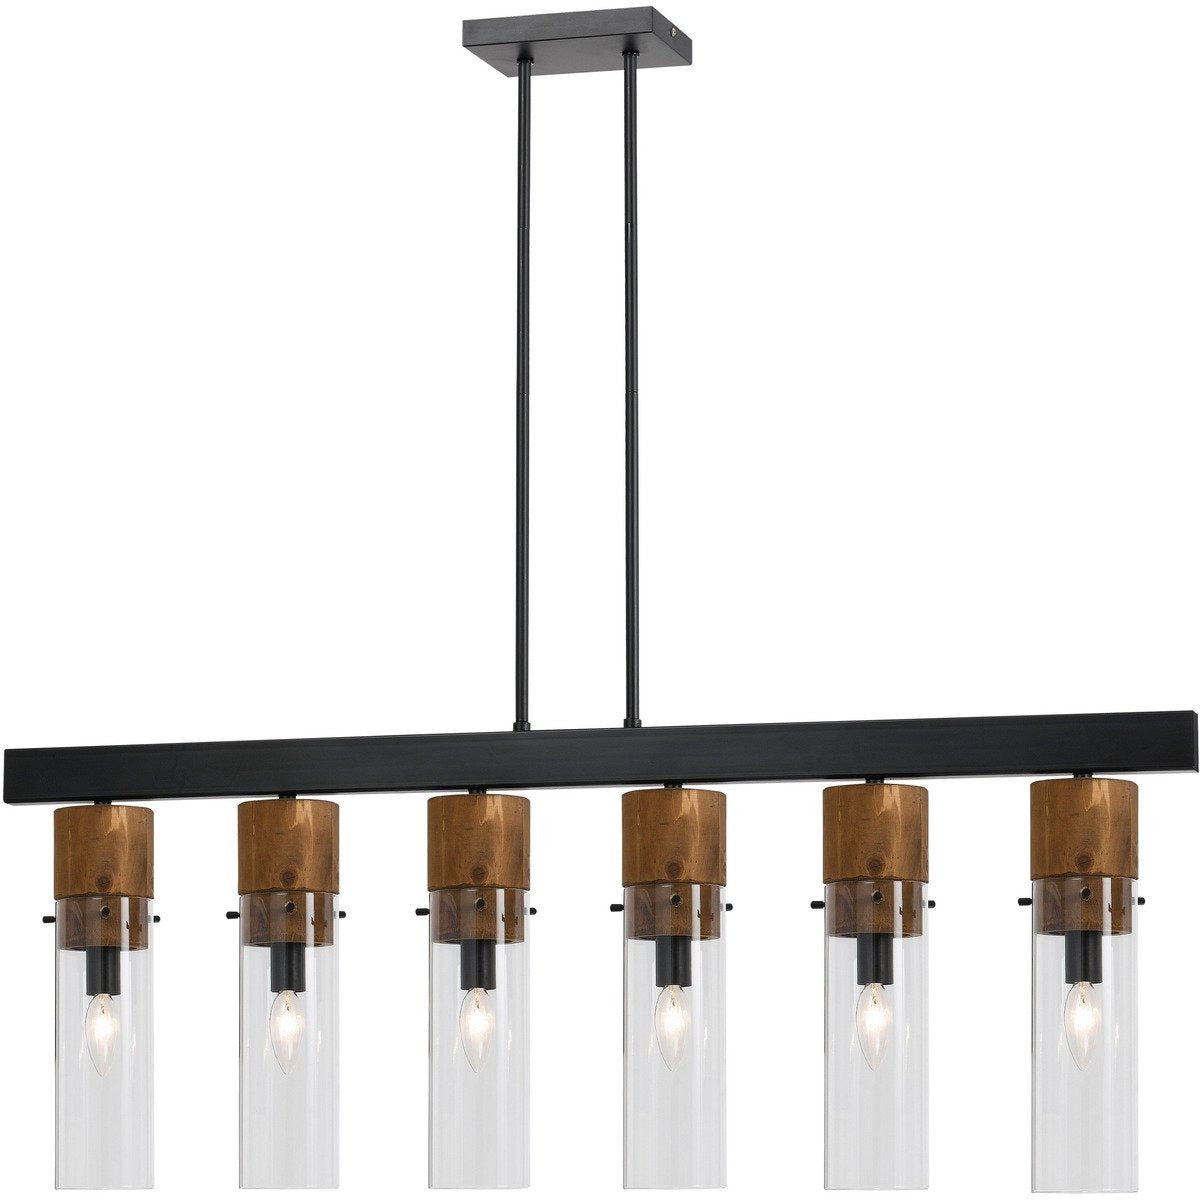 Chandeliers & Pendants - 6 Bulb Metal Frame Island Fixture With Cylindrical Glass Shades, Black